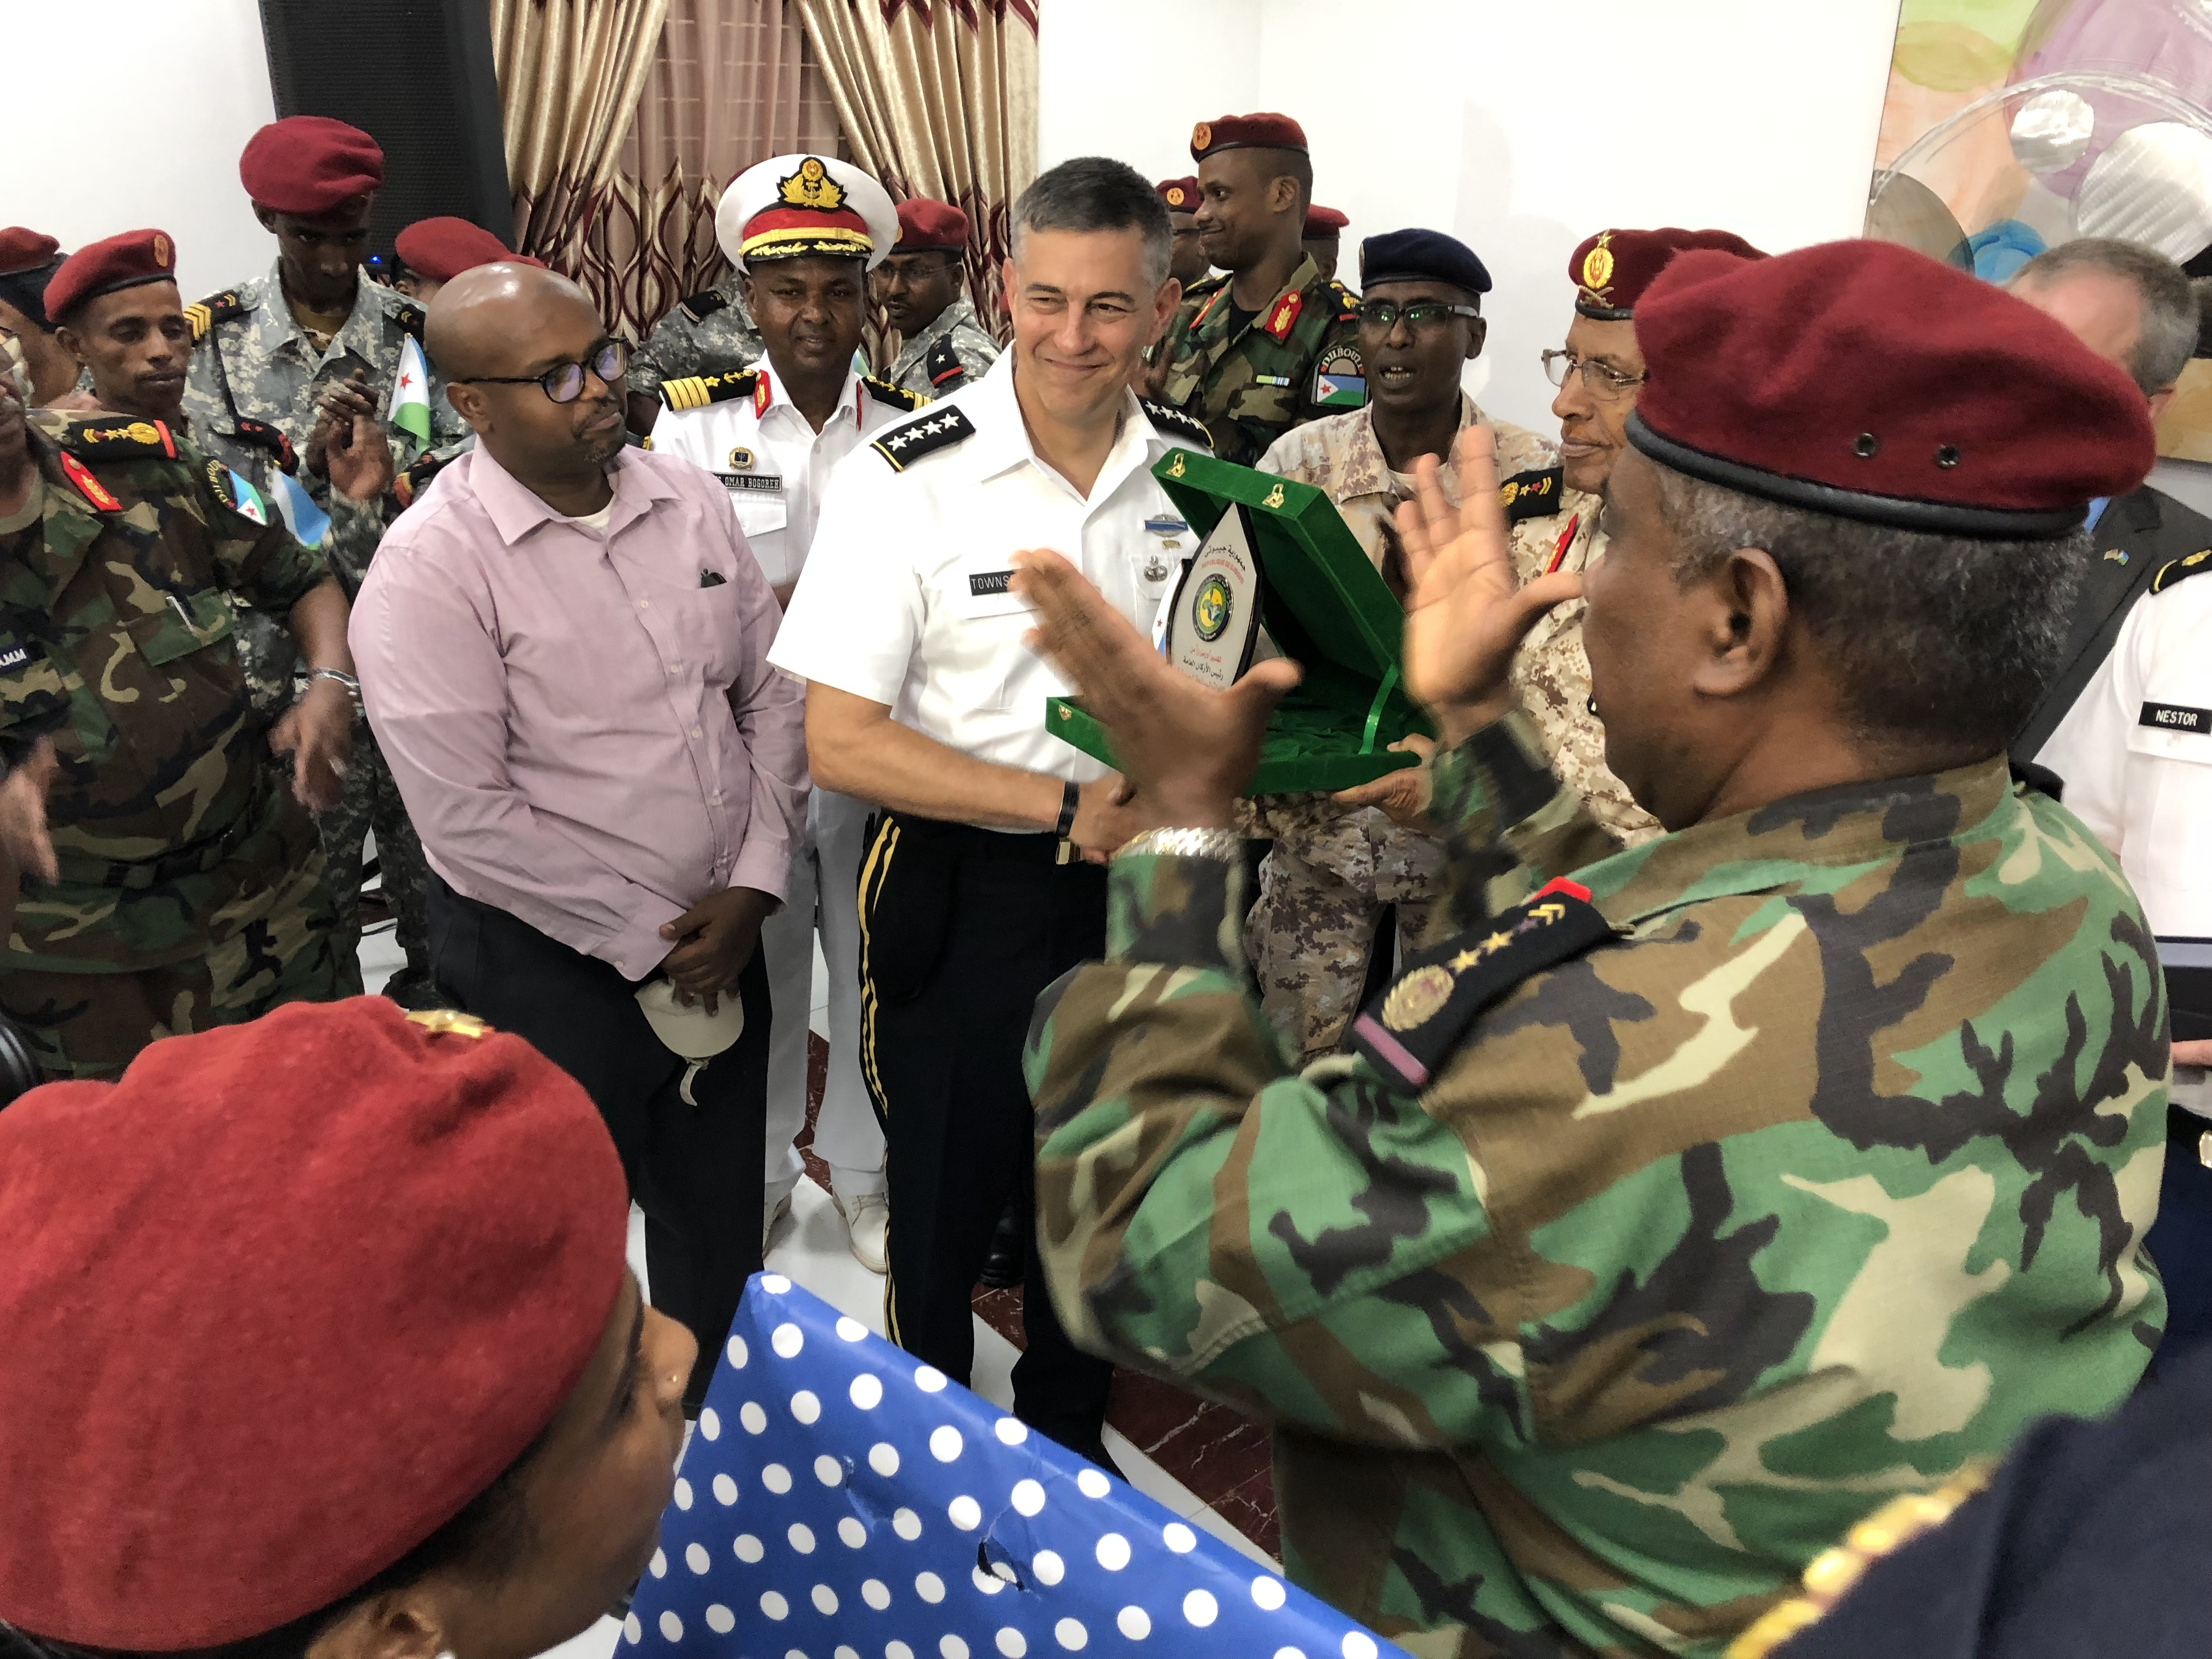 U.S. Army Gen. Stephen Townsend, commander of U.S. Africa Command, exchanges gifts with Djiboutian military officials during a visit to Djibouti Aug. 8, 2019. Townsend visited Djibouti as part of his first visit to Africa since taking command.